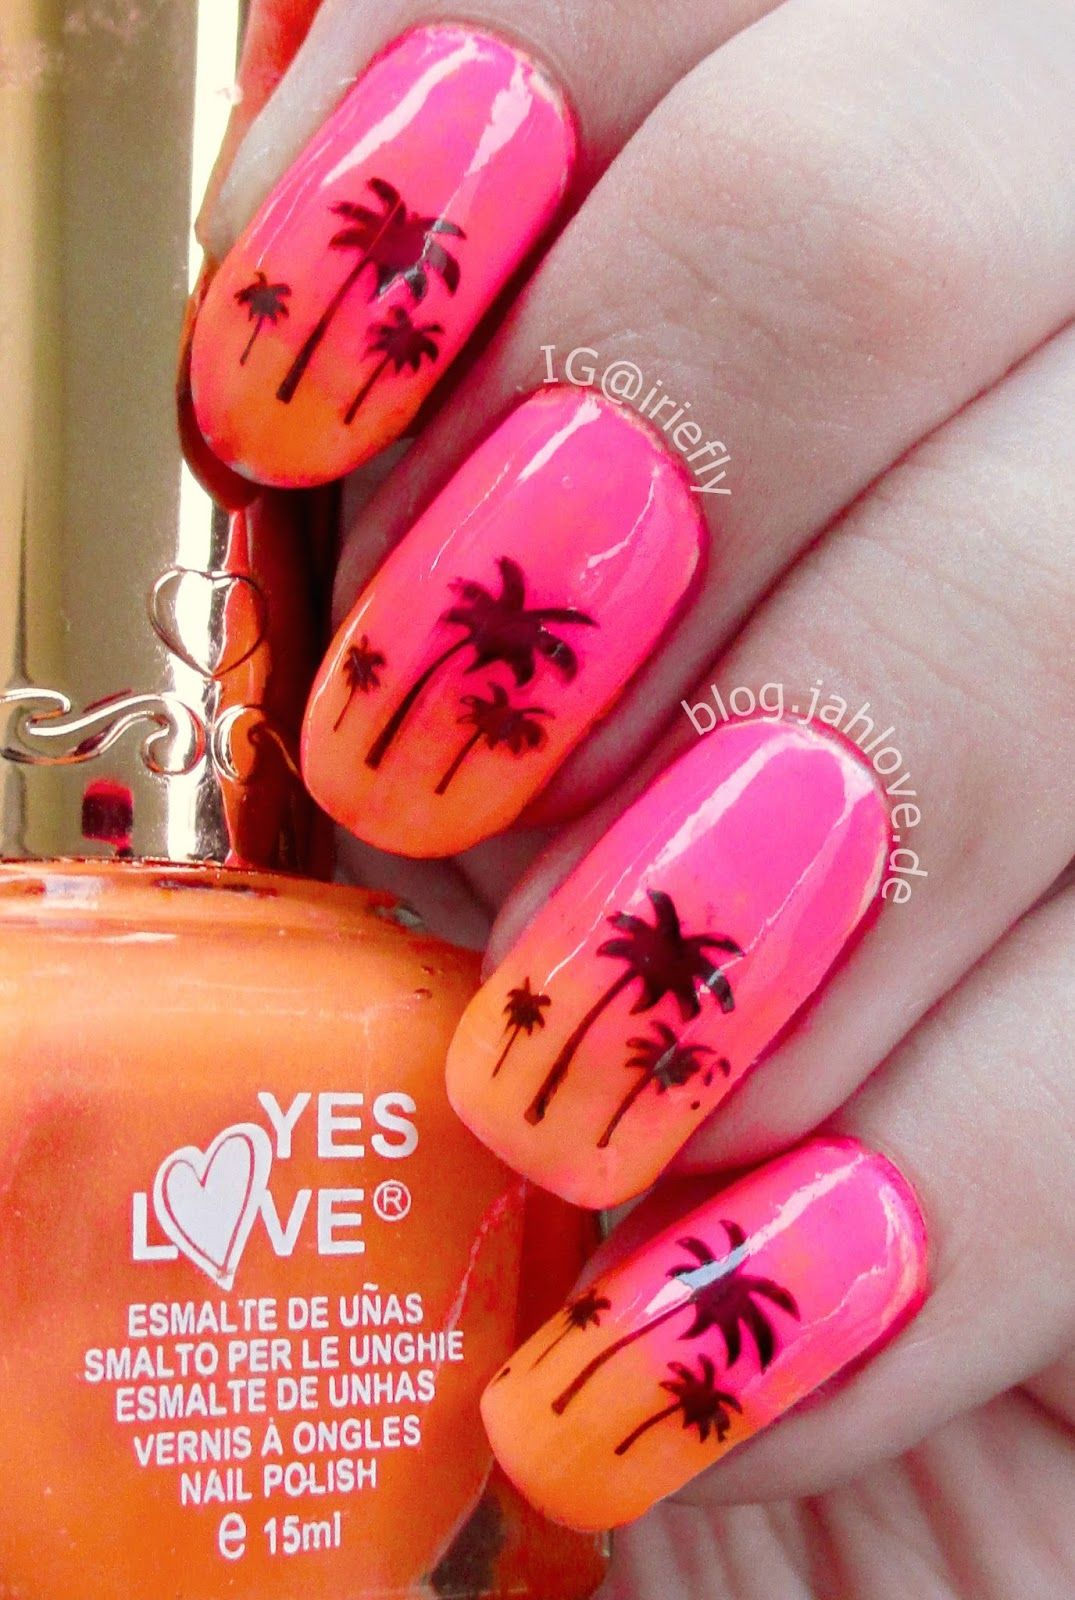 Blogjahlove Nails Yes Love Neon Ombr In Orange Pink